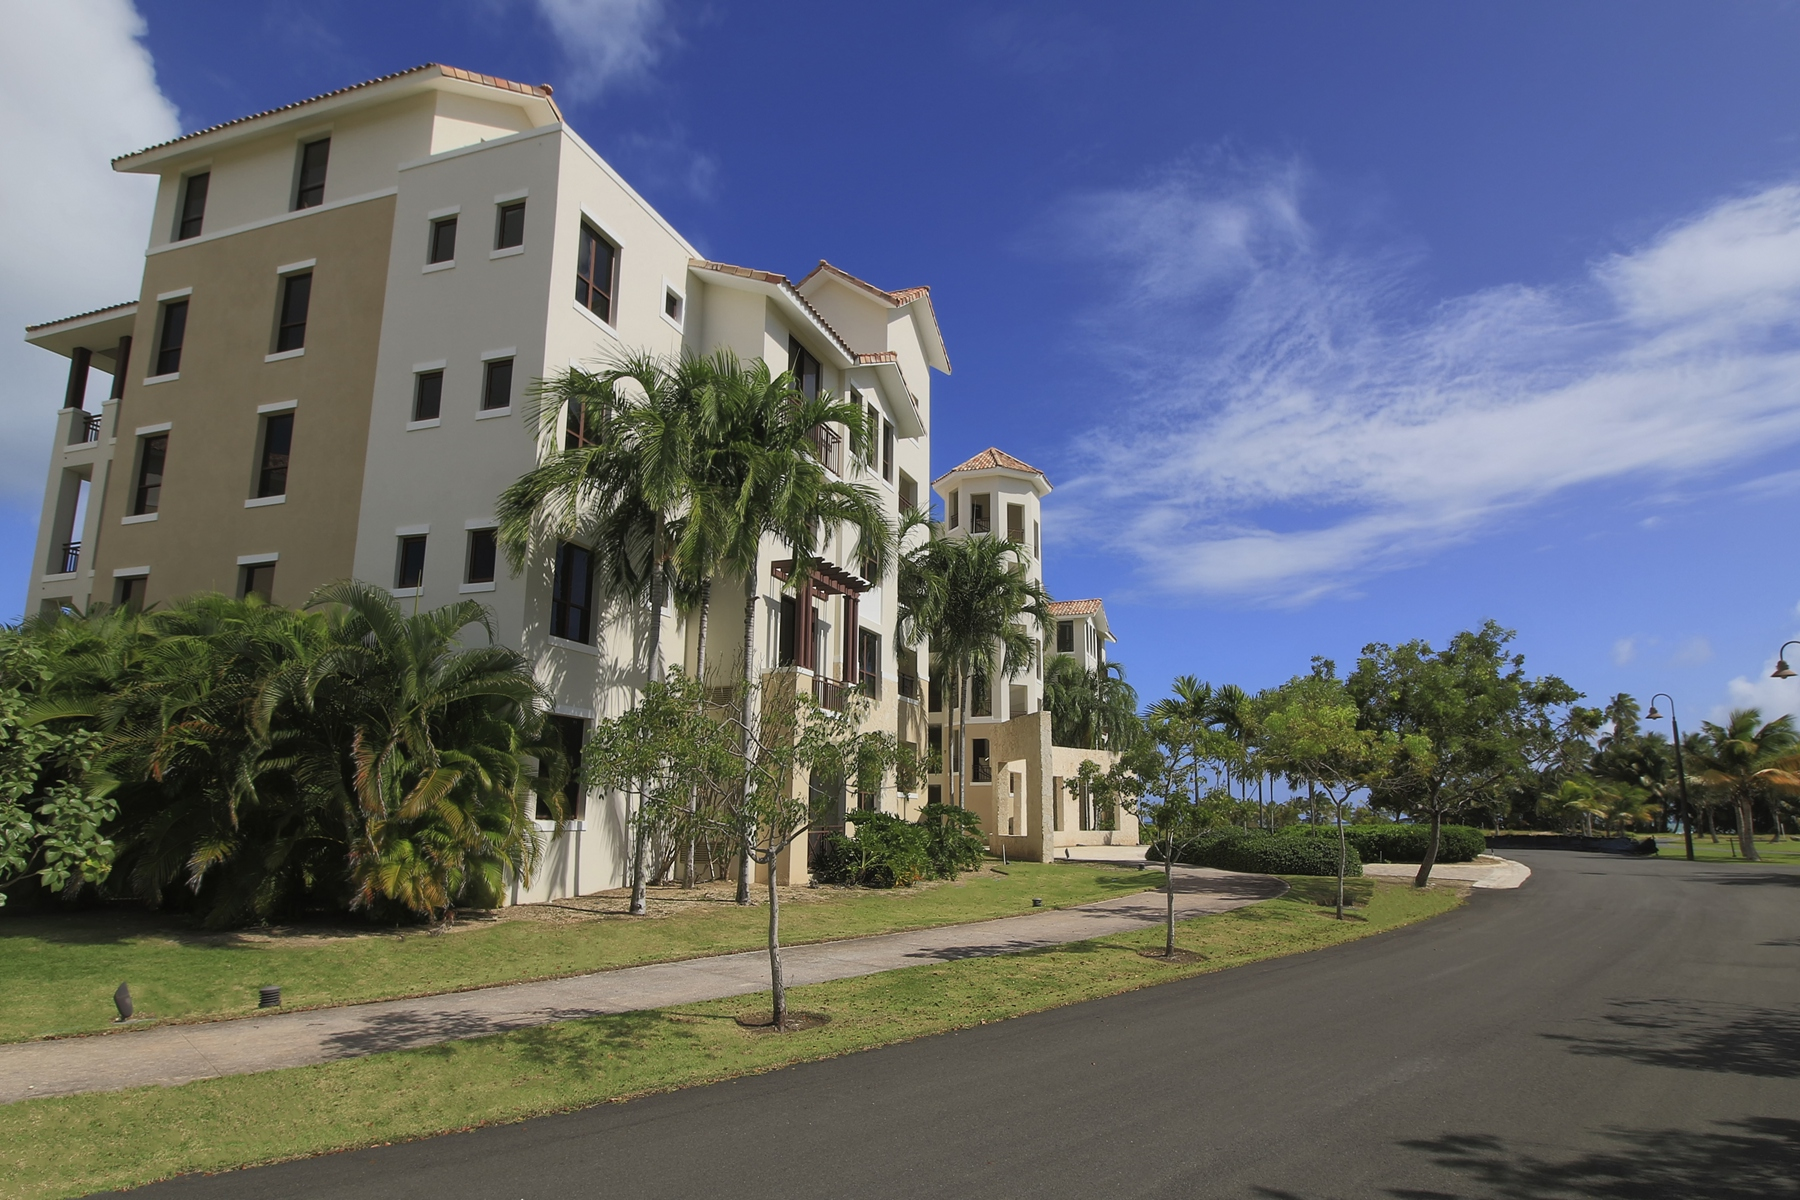 Additional photo for property listing at Residence 133 at 238 Candelero Drive 238 Candelero Drive, Apt 133 Solarea Beach Resort and Yacht Club Palmas Del Mar, Puerto Rico 00791 Puerto Rico